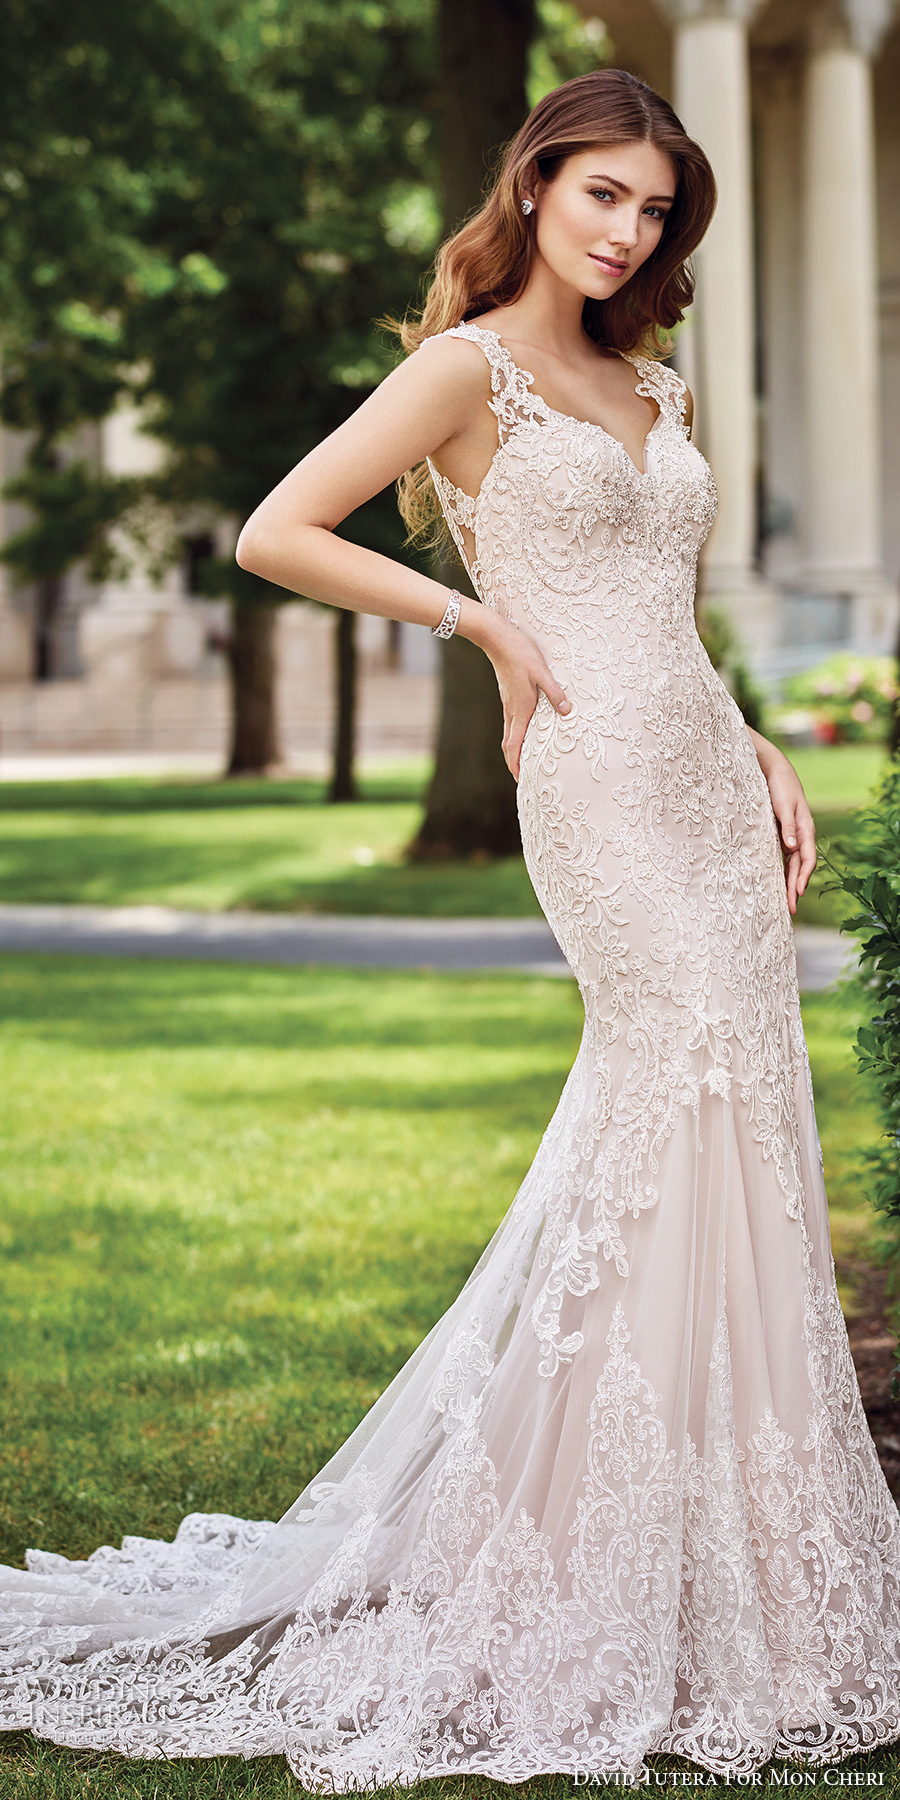 david tutera mc spring 2017 bridal lace strap sweetheart neckline heavily embroidered bodice elegant fit and flare wedding dress illusion back chapel train (117273) mv